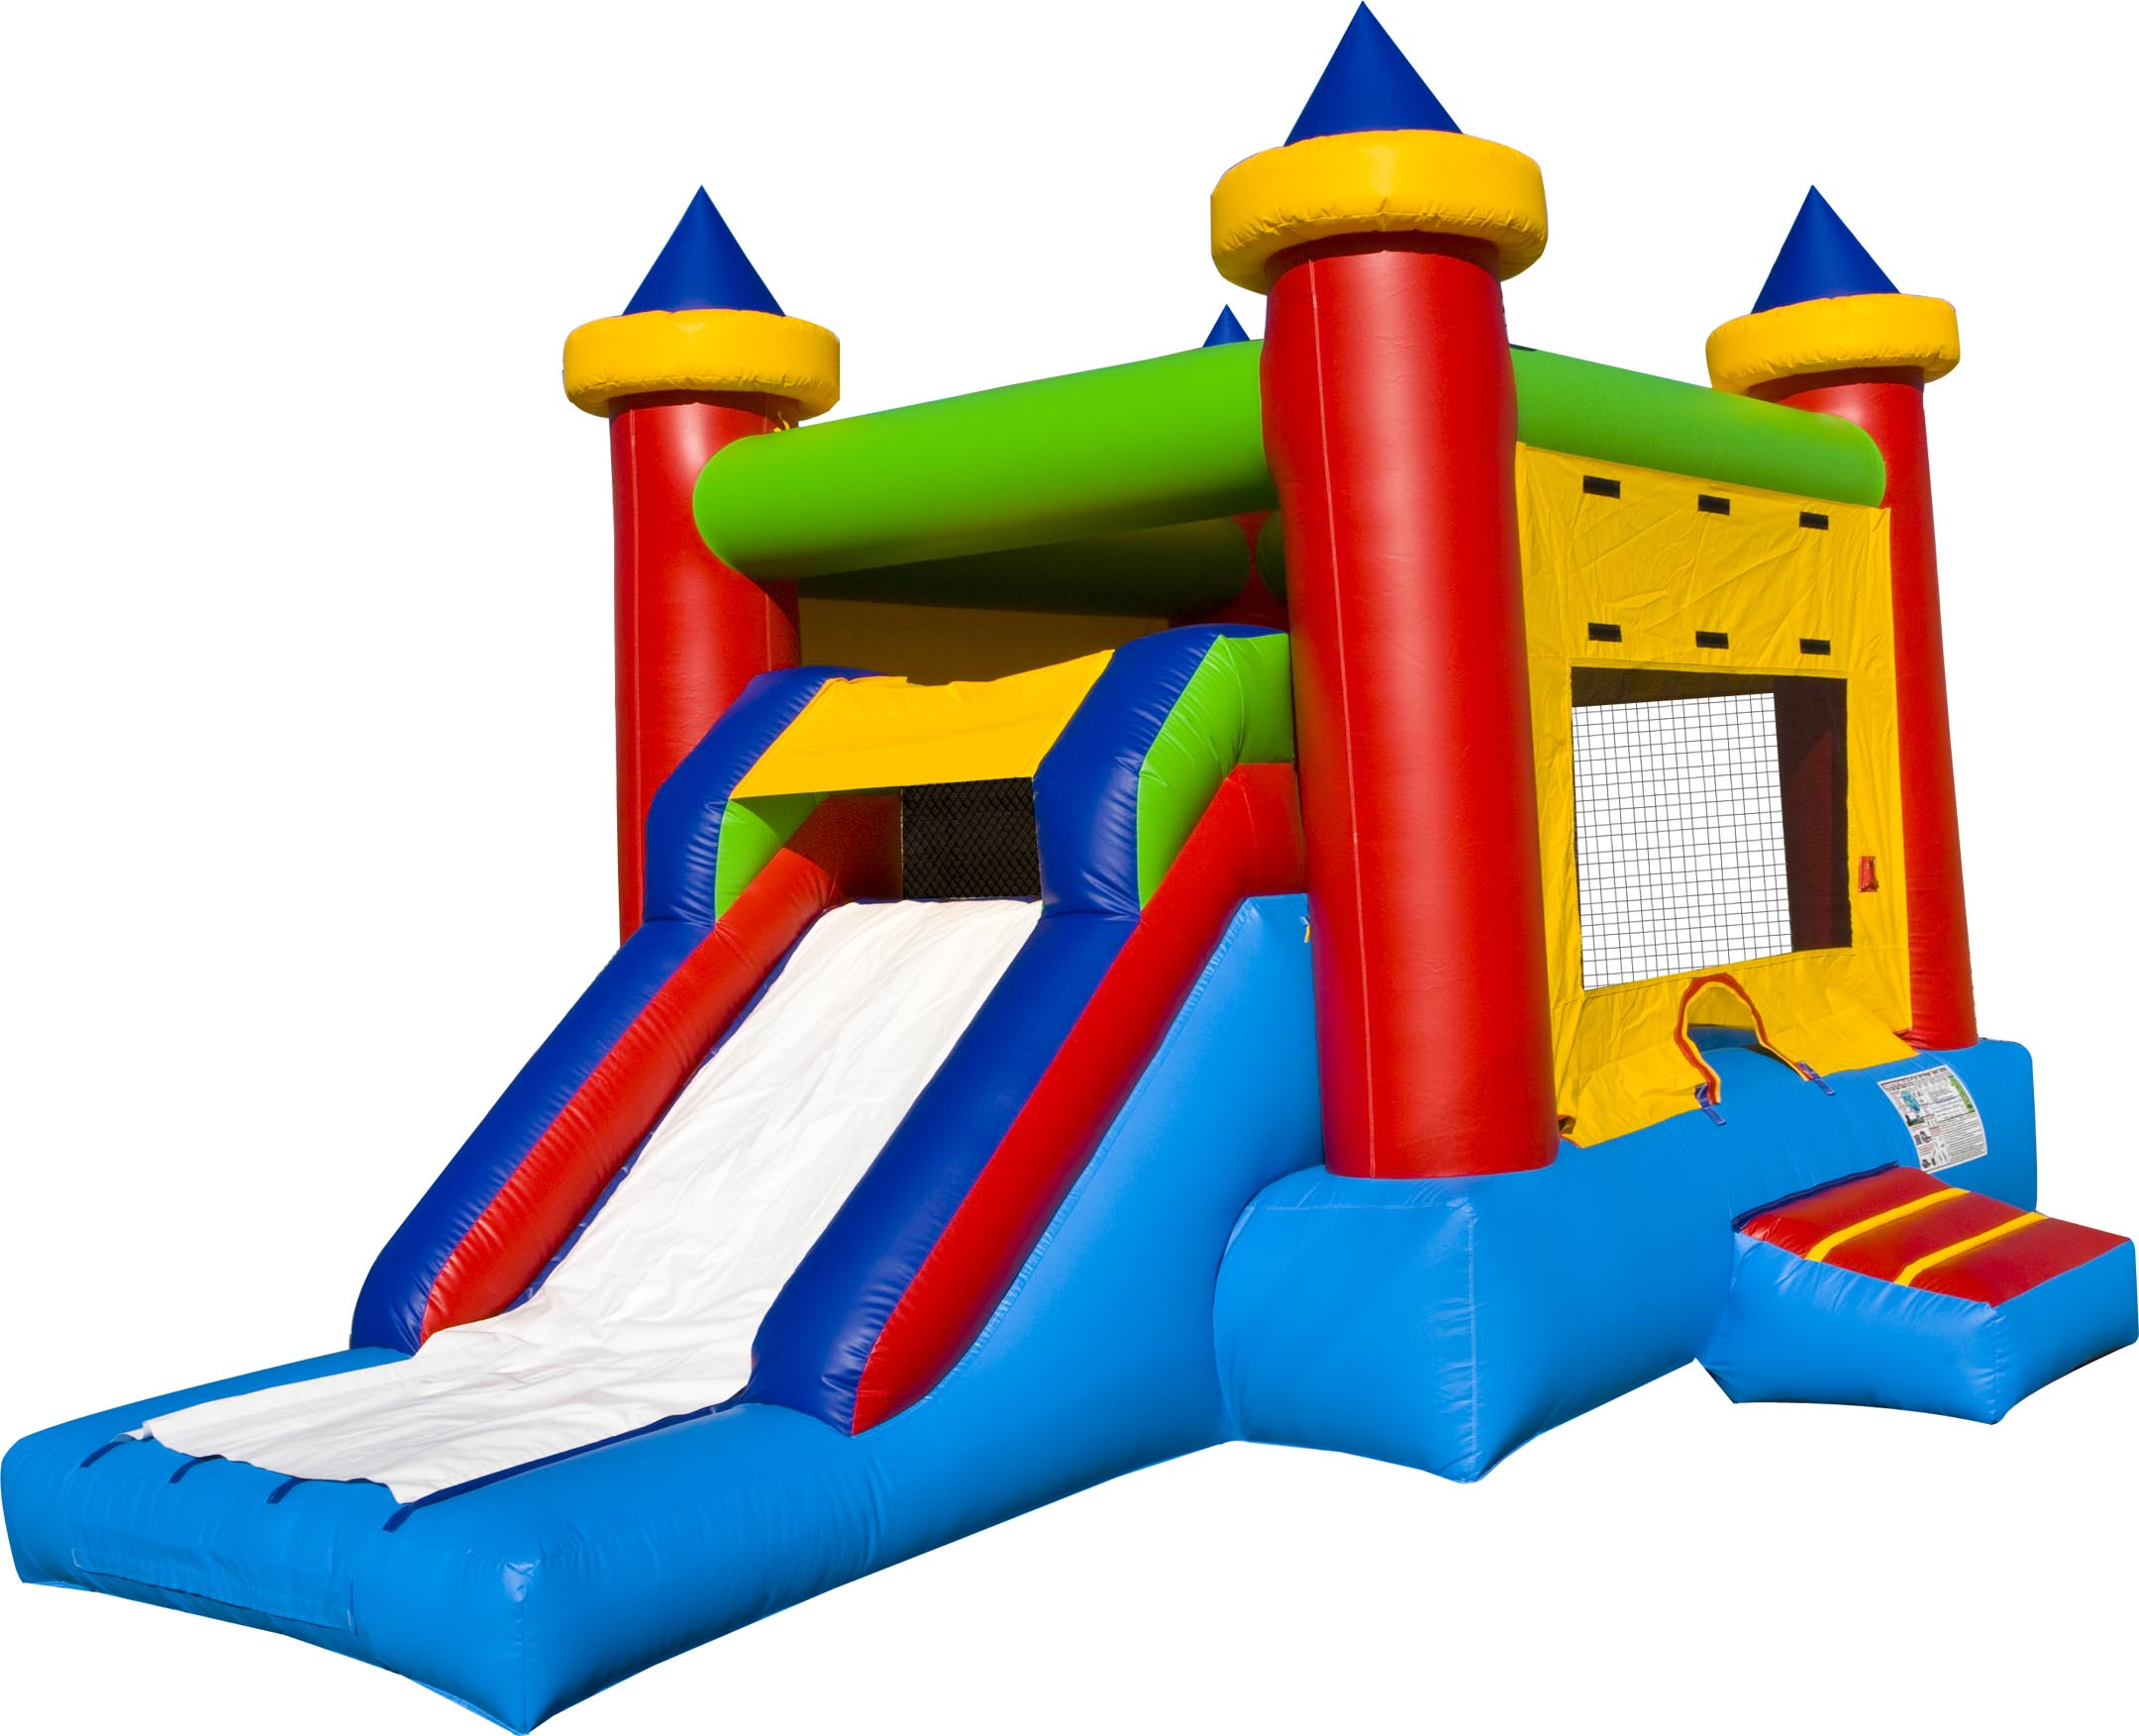 2160x1753 Carnival Bounce House Clipart